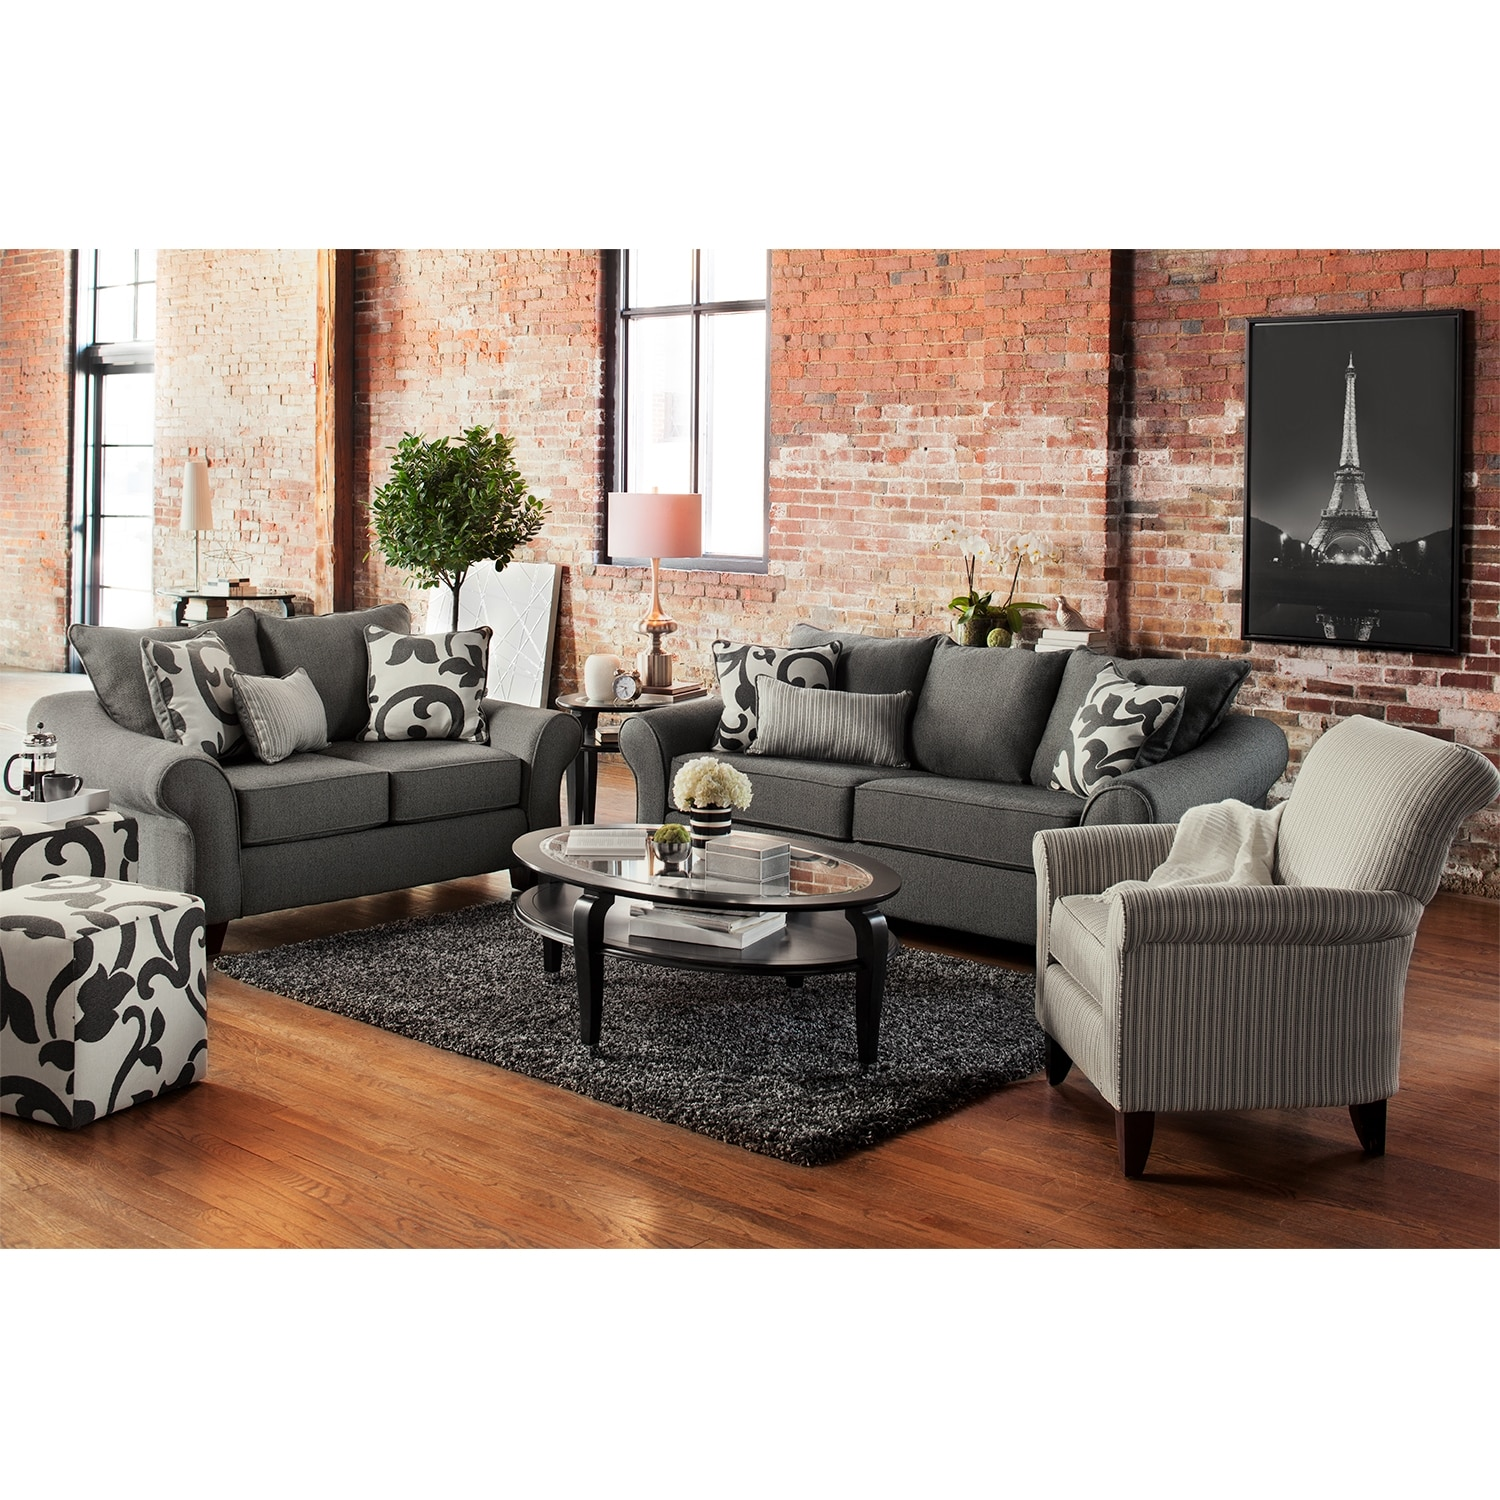 Colette gray sofa value city furniture for The living room sofas